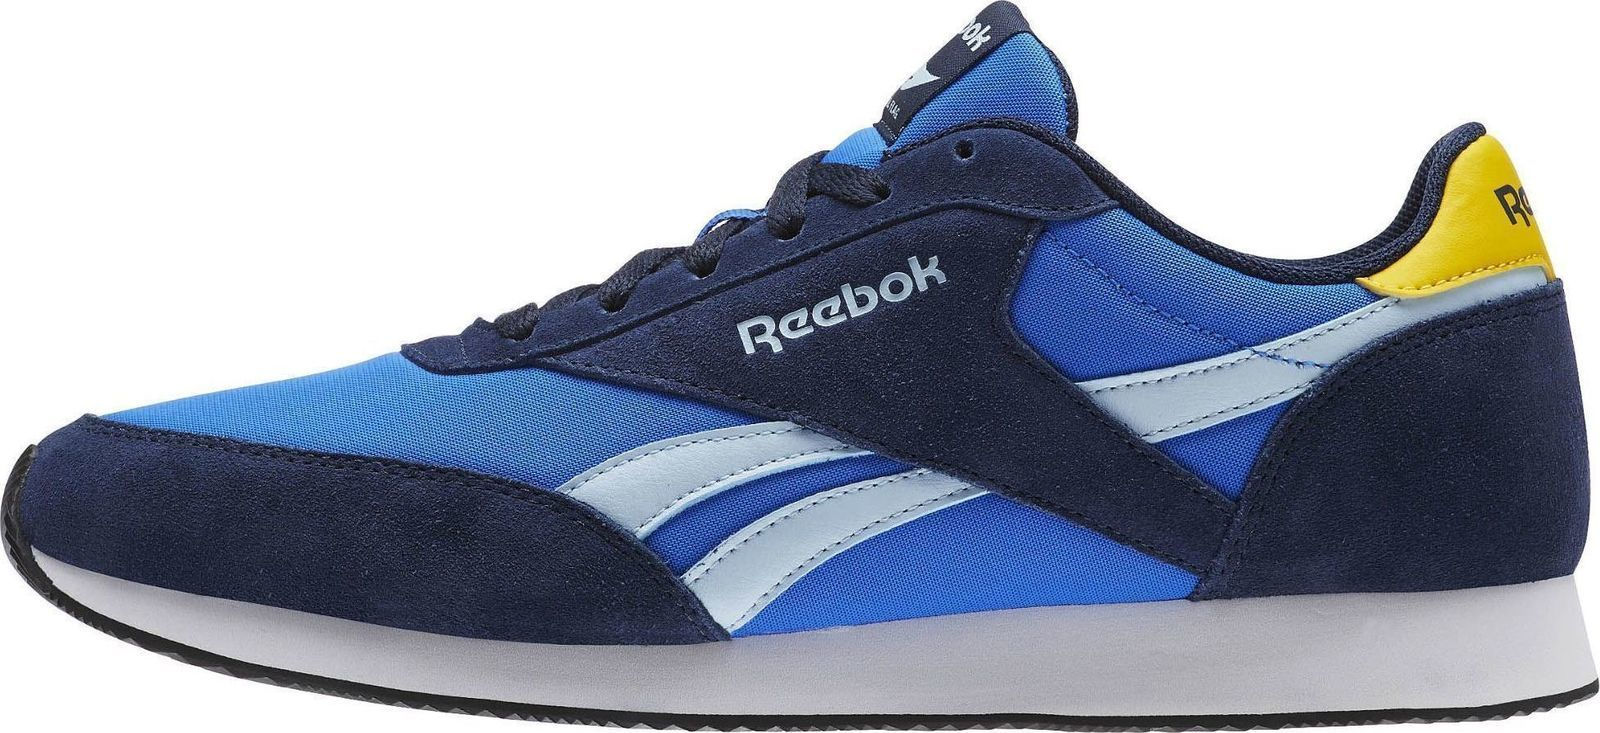 2 Show Blueyellowwhite About Reebok Trainers Details Original Royal Classic Title Jogger E2IeWbDH9Y